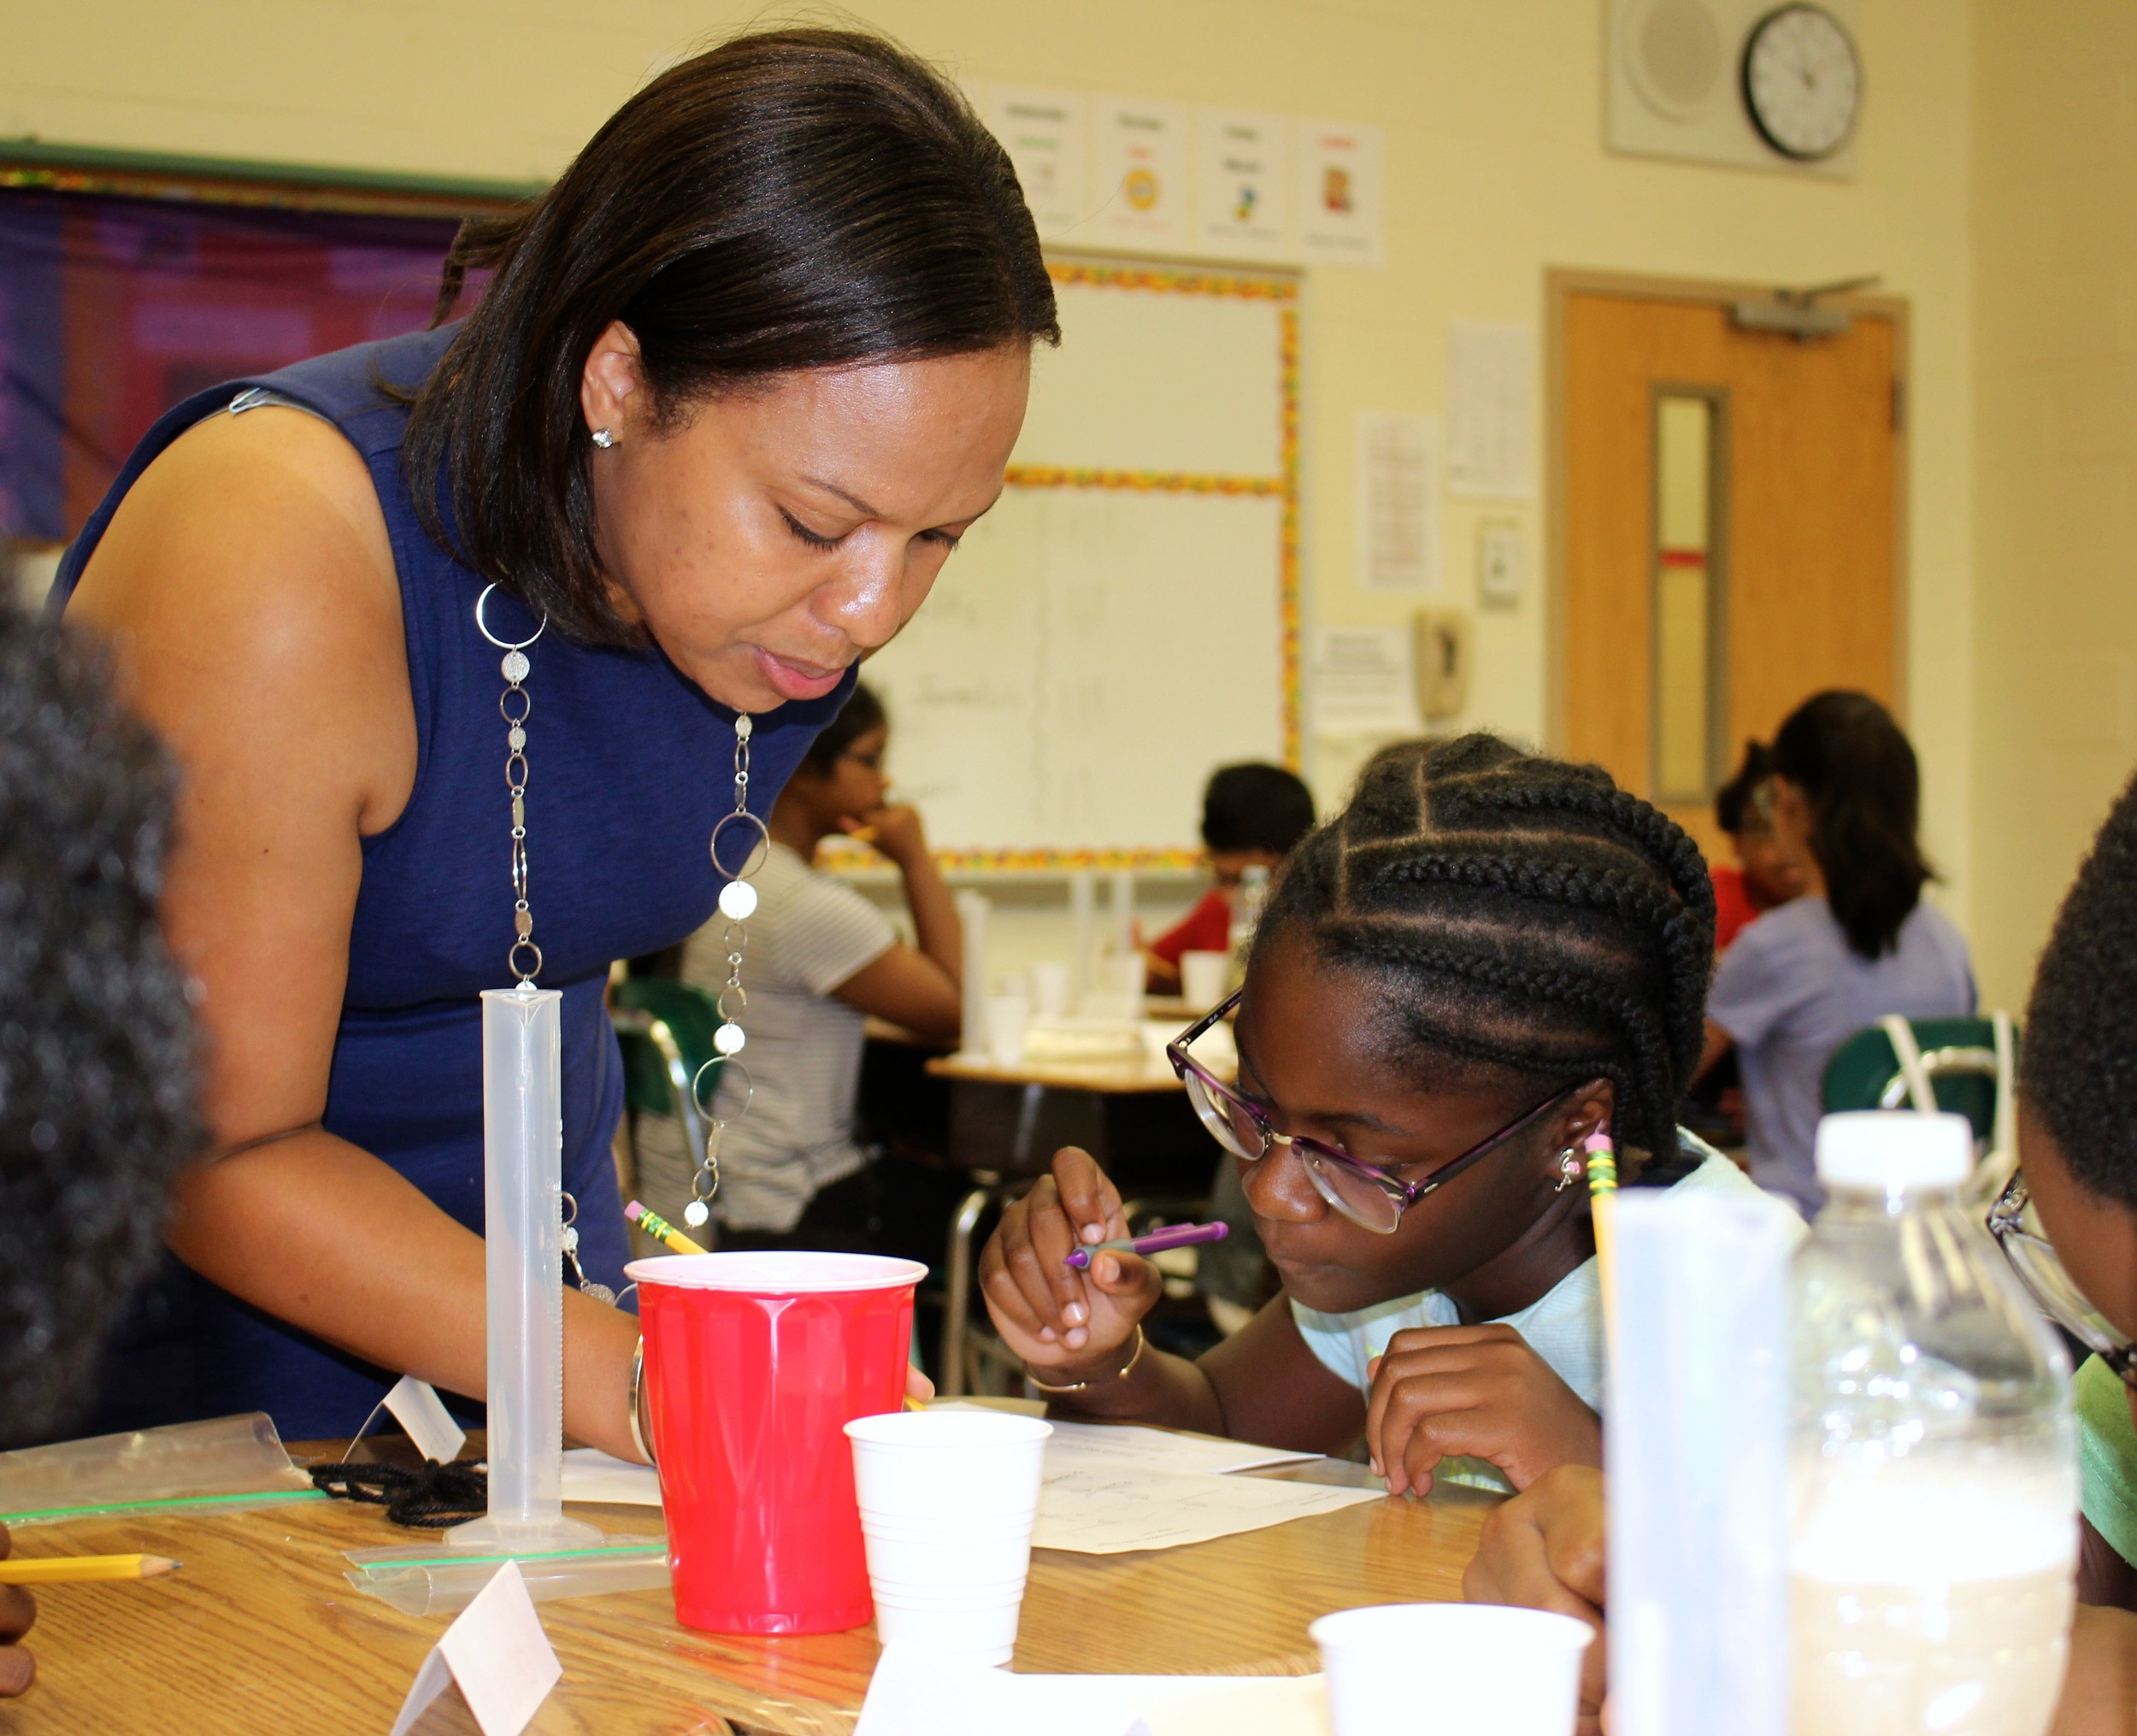 Gotham Avenue School student Anielia Bryan received assistance from teacher Ms. Stacey Taylor during the workshop.